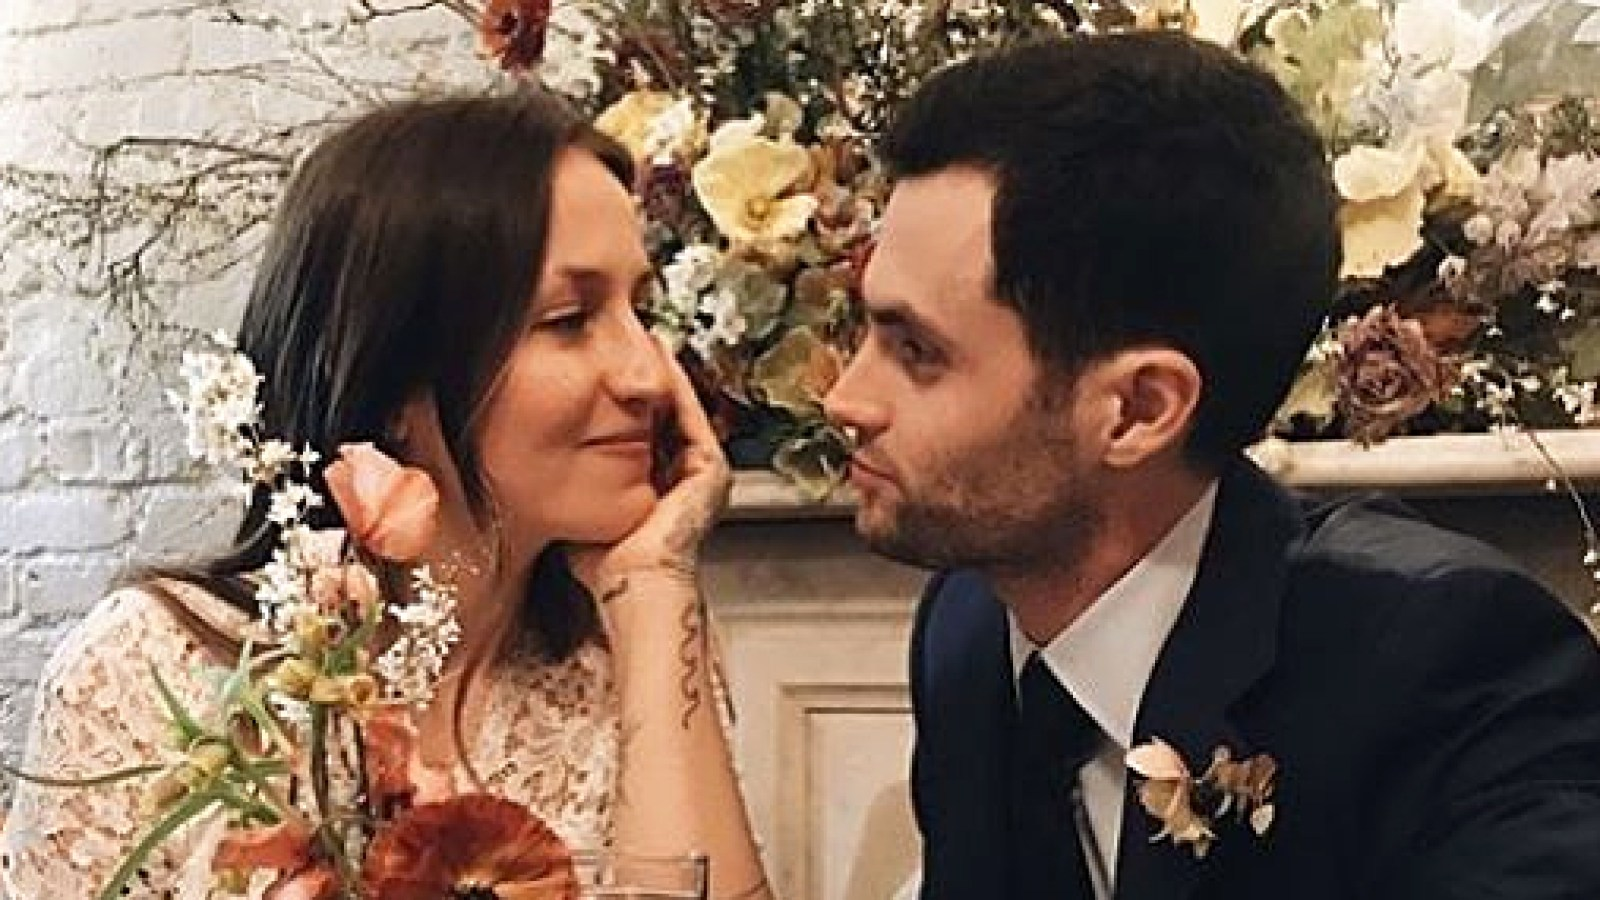 Domino Kirke Wed Penn Badgley In Boho Mini Wedding Dress